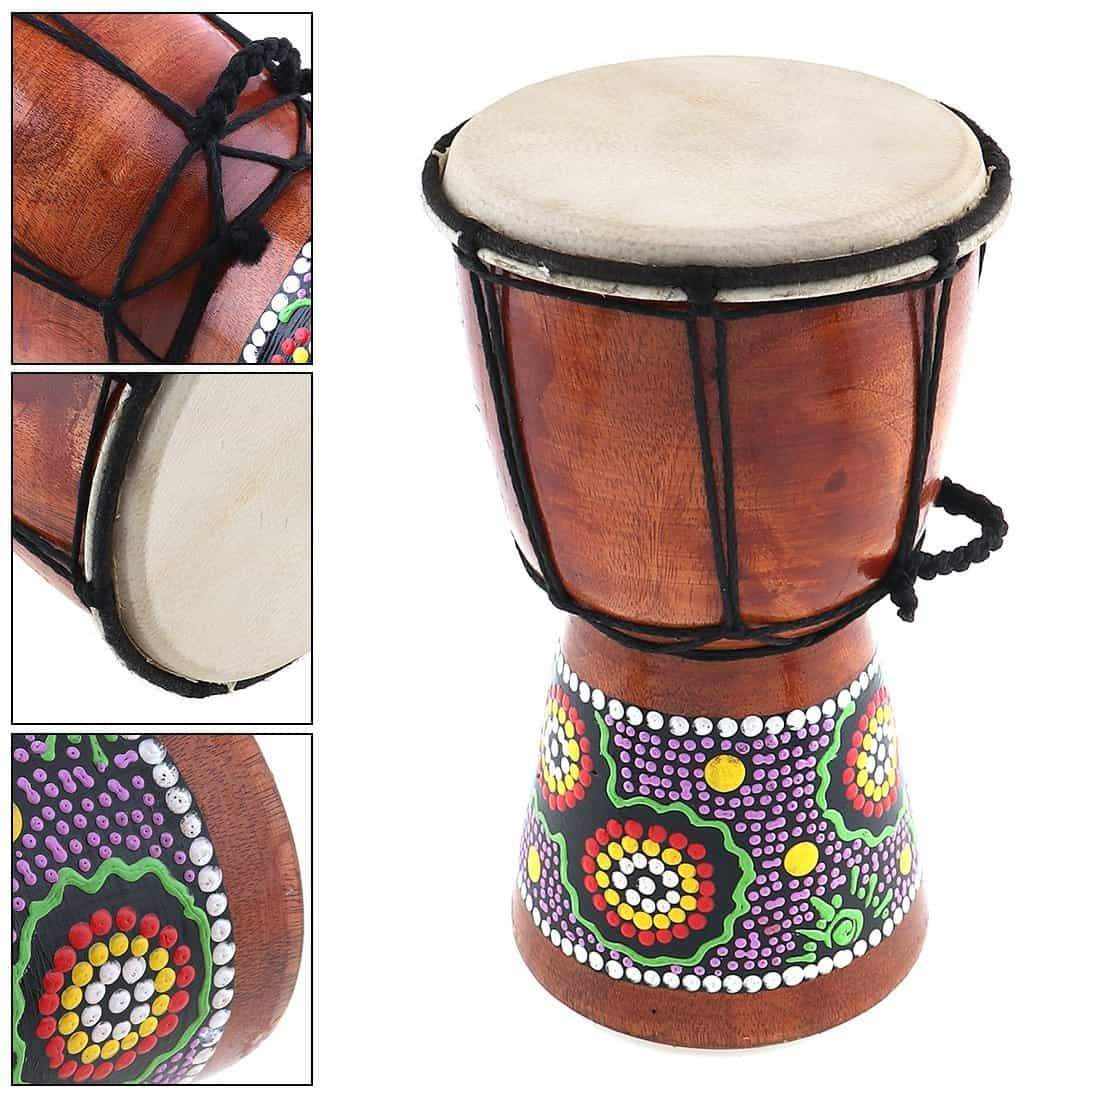 4 Inch 6 Inch Professional African Djembe Drum Wood, [variant_title], [option1], [option2], [option3] - anythinganyware